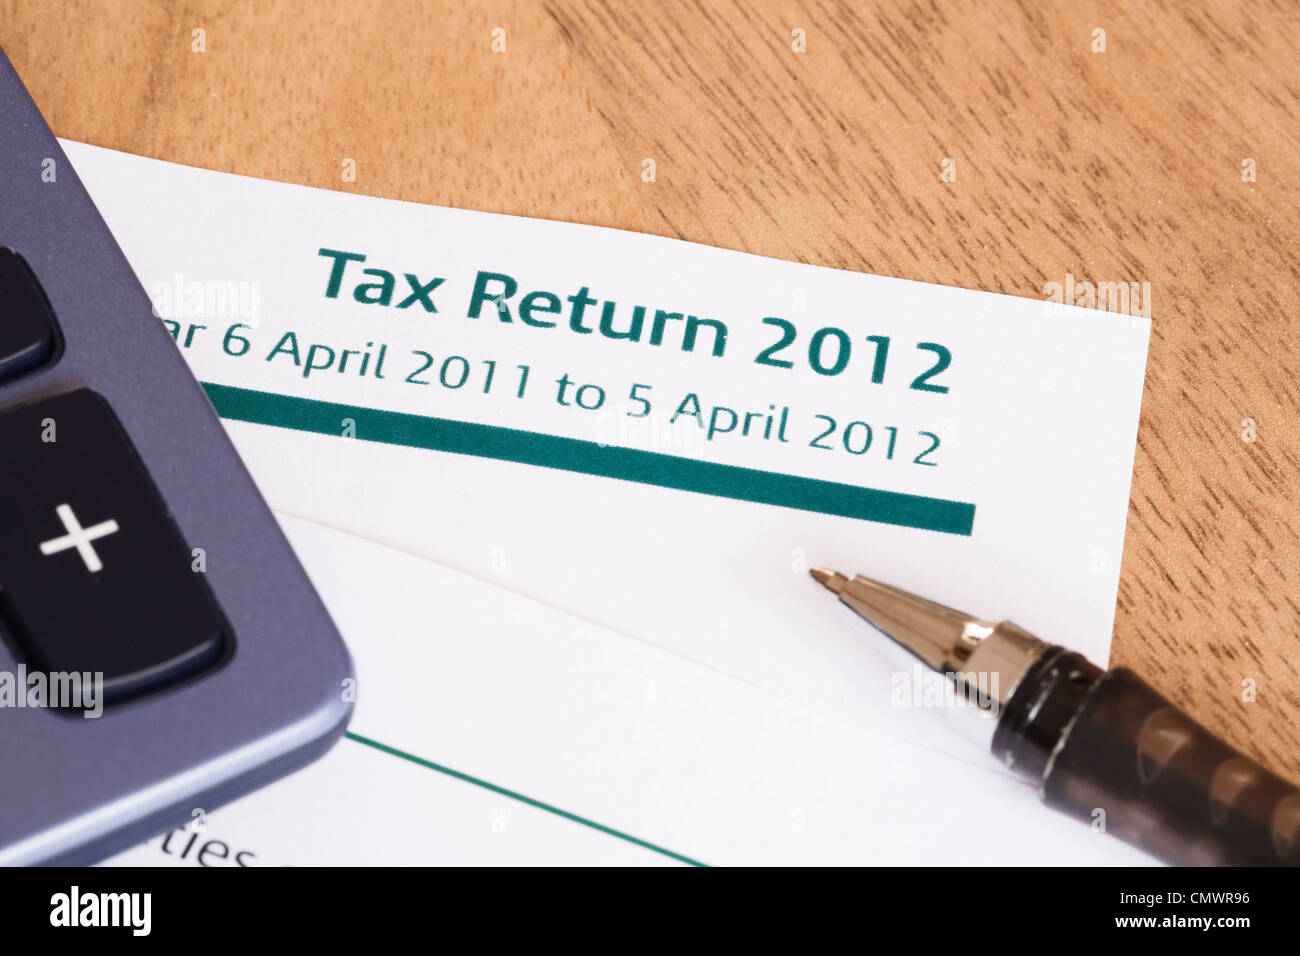 Closeup of UK Income tax return form with tax period for 2012 - Stock Image